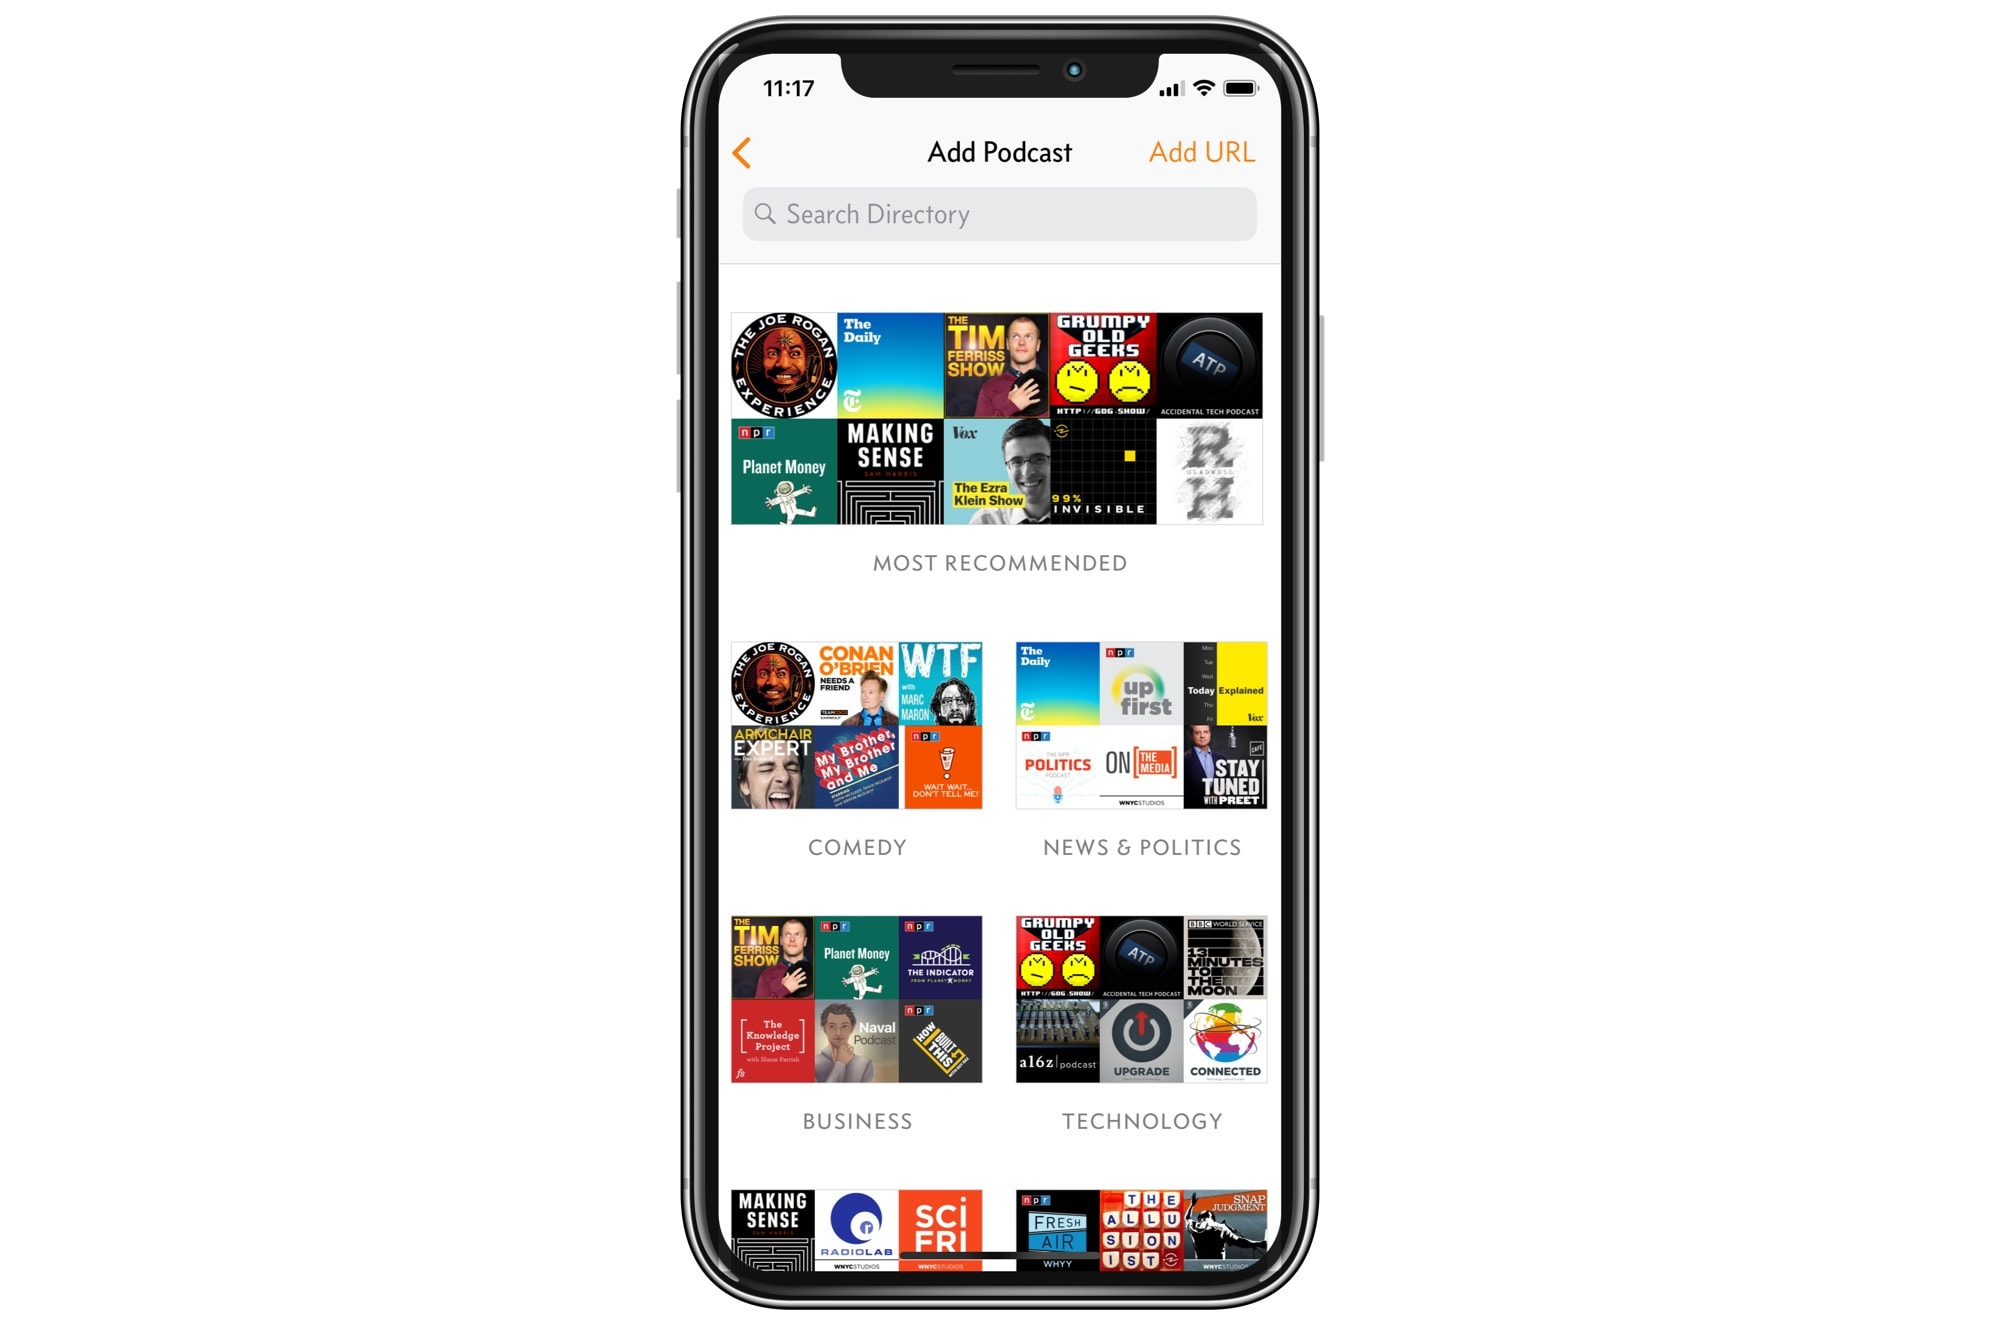 Overcast podcast recommendations are grouped by genre.